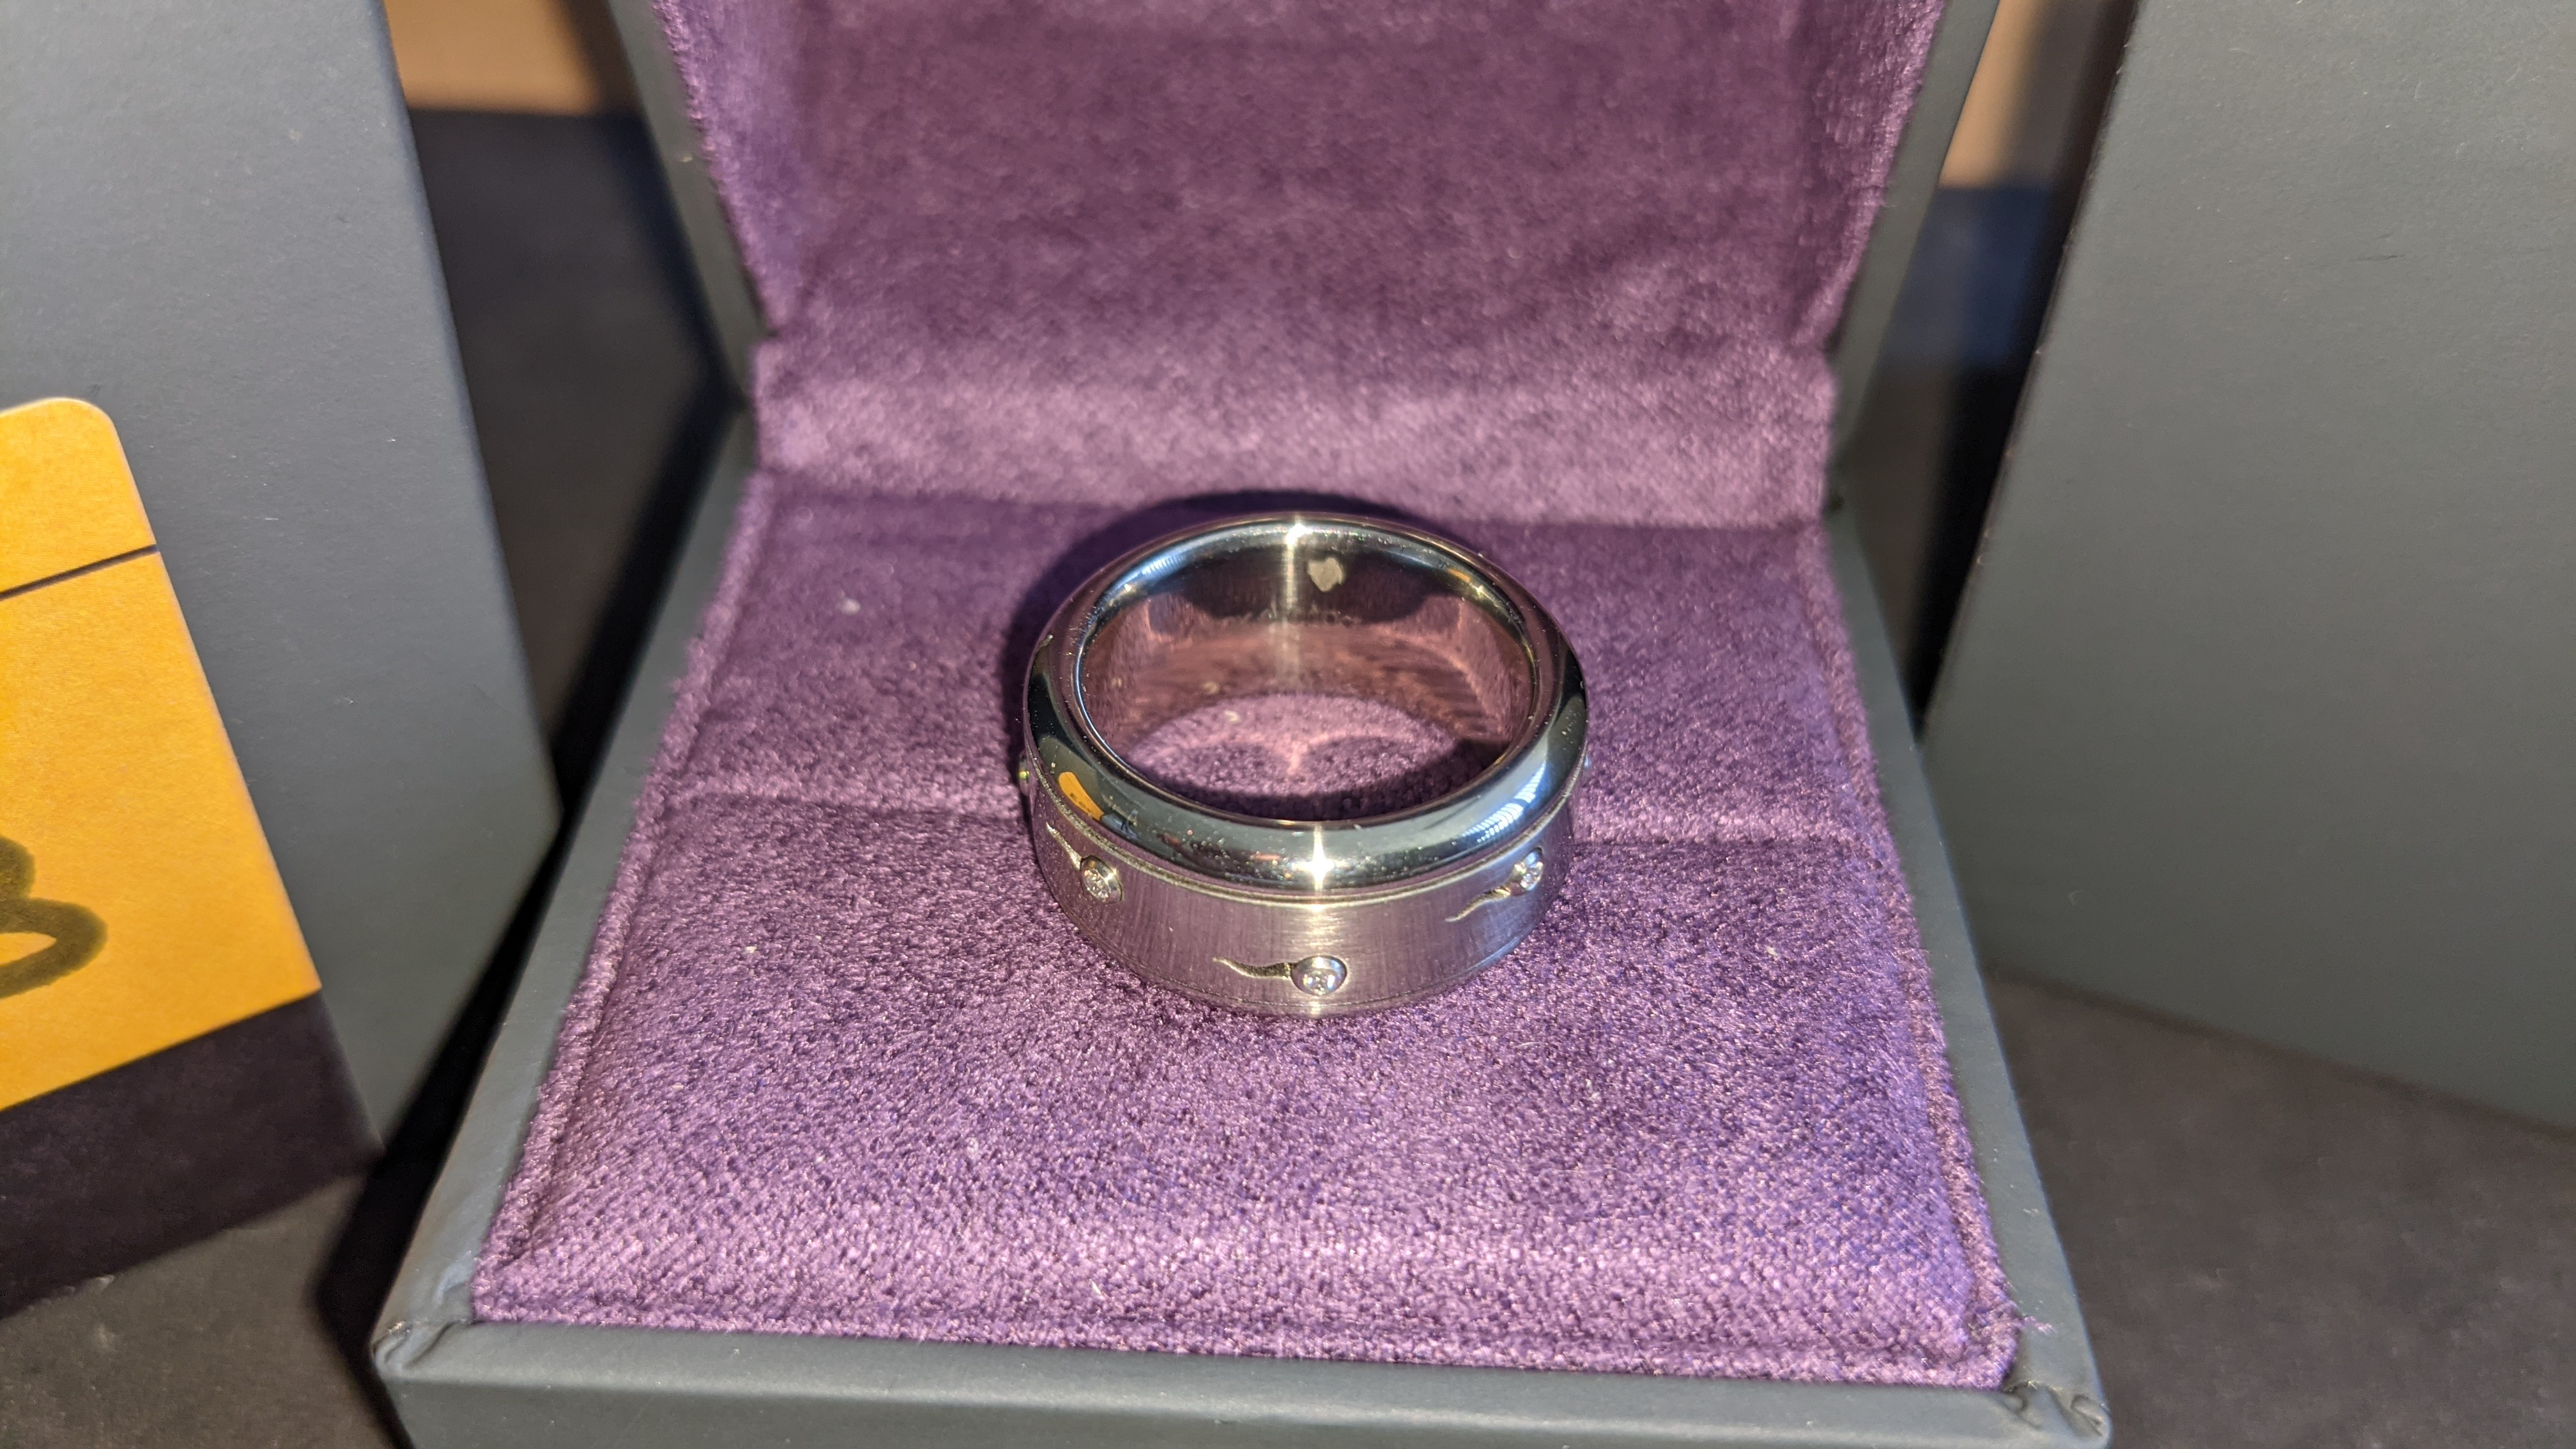 Stainless steel & diamond spin ring RRP £455 - Image 5 of 13